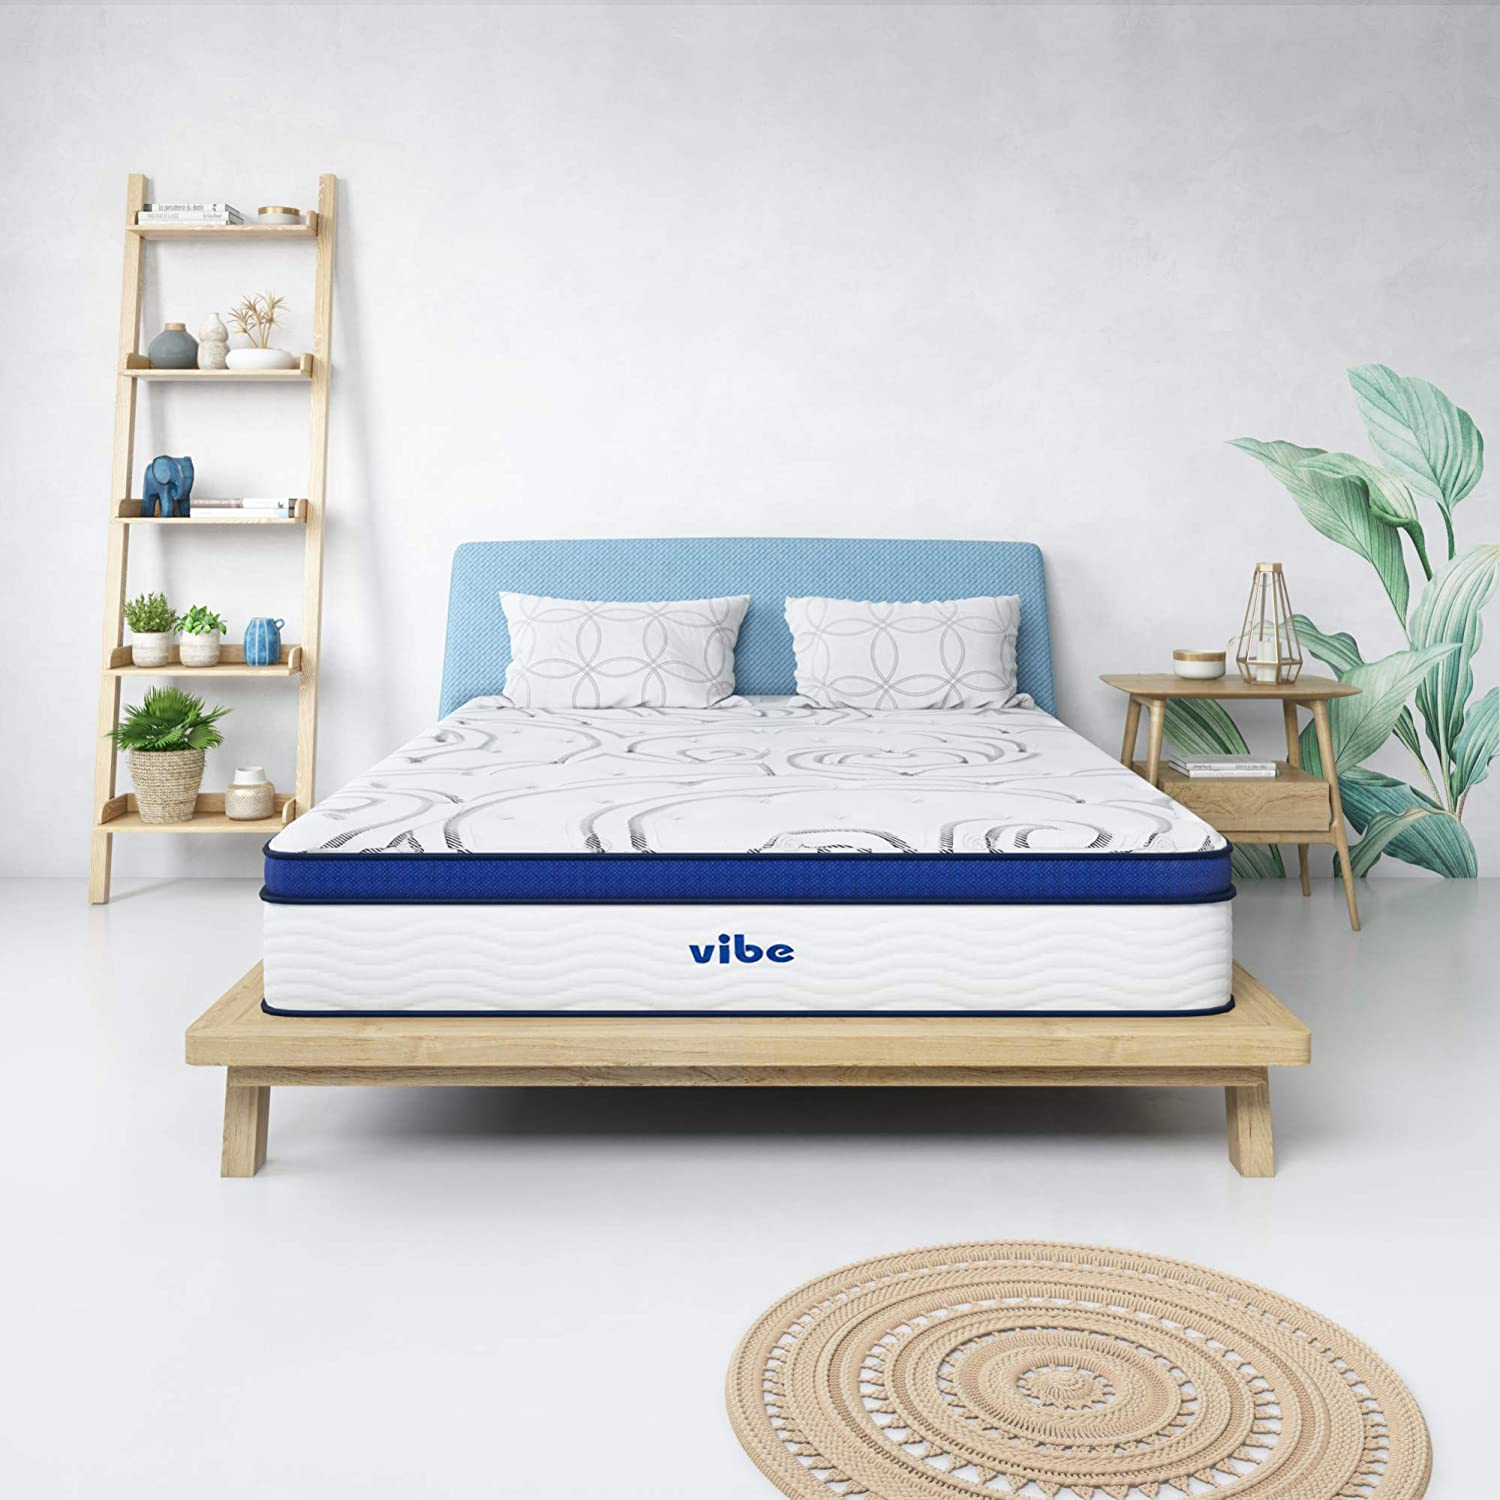 Vibe Quilted Gel Memory Foam and Innerspring Hybrid Pillow Top 12-Inch Mattress, Queen